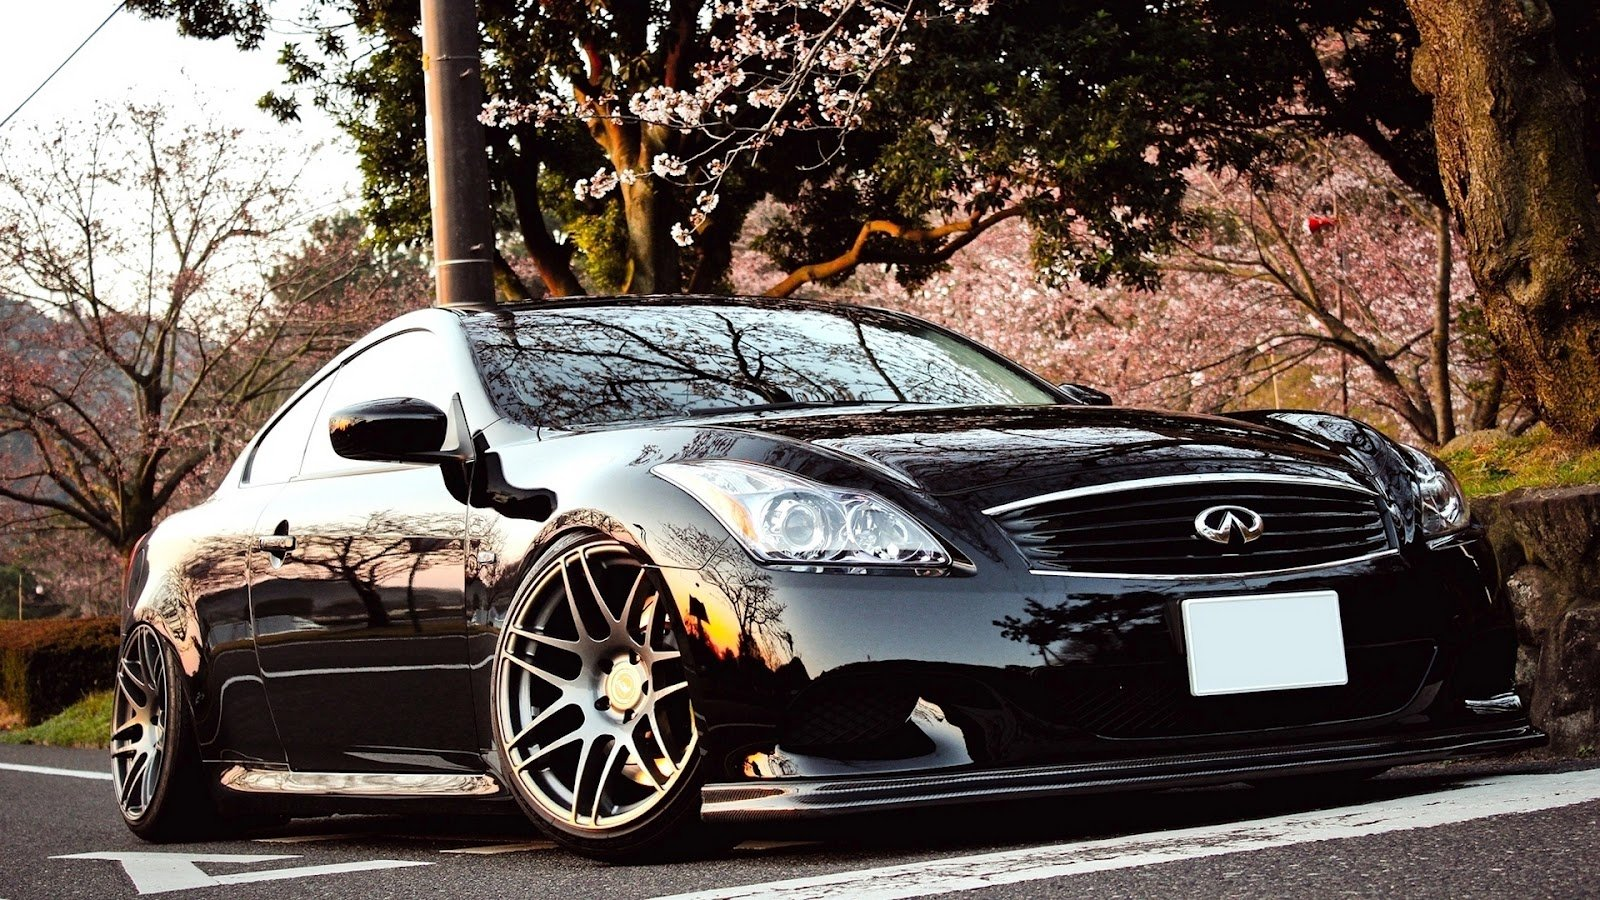 2015 Incurve Wheels cars <b>tuning Infiniti G37</b> ipl <b>wallpaper</b> ...